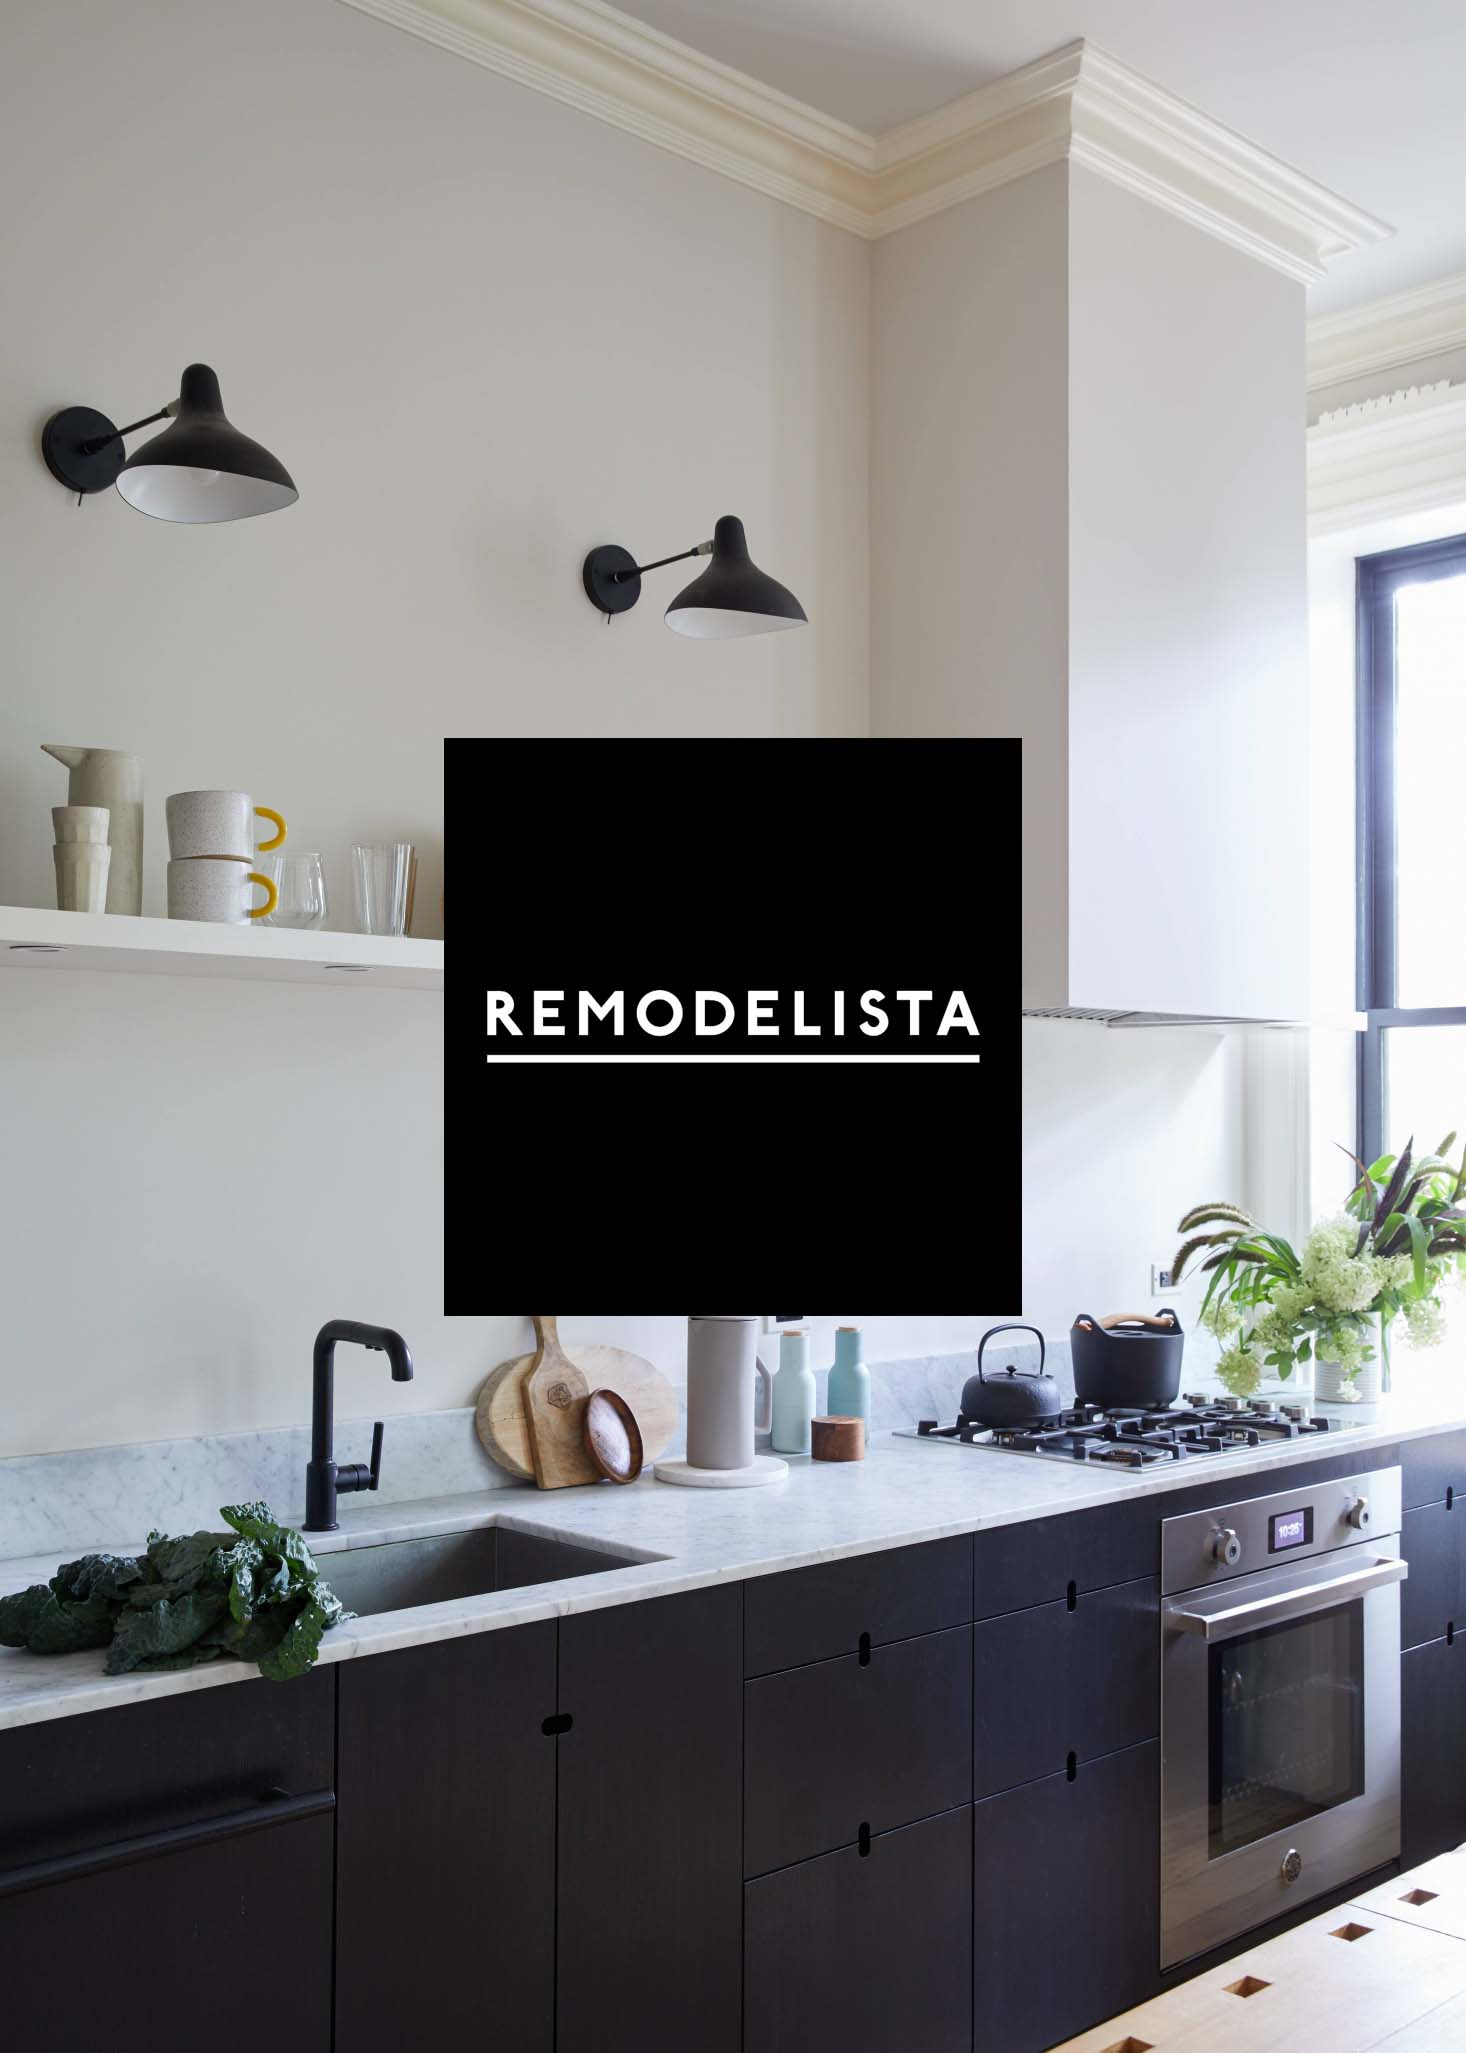 REMODELISTA - KITCHEN OF THE WEEK, 2018